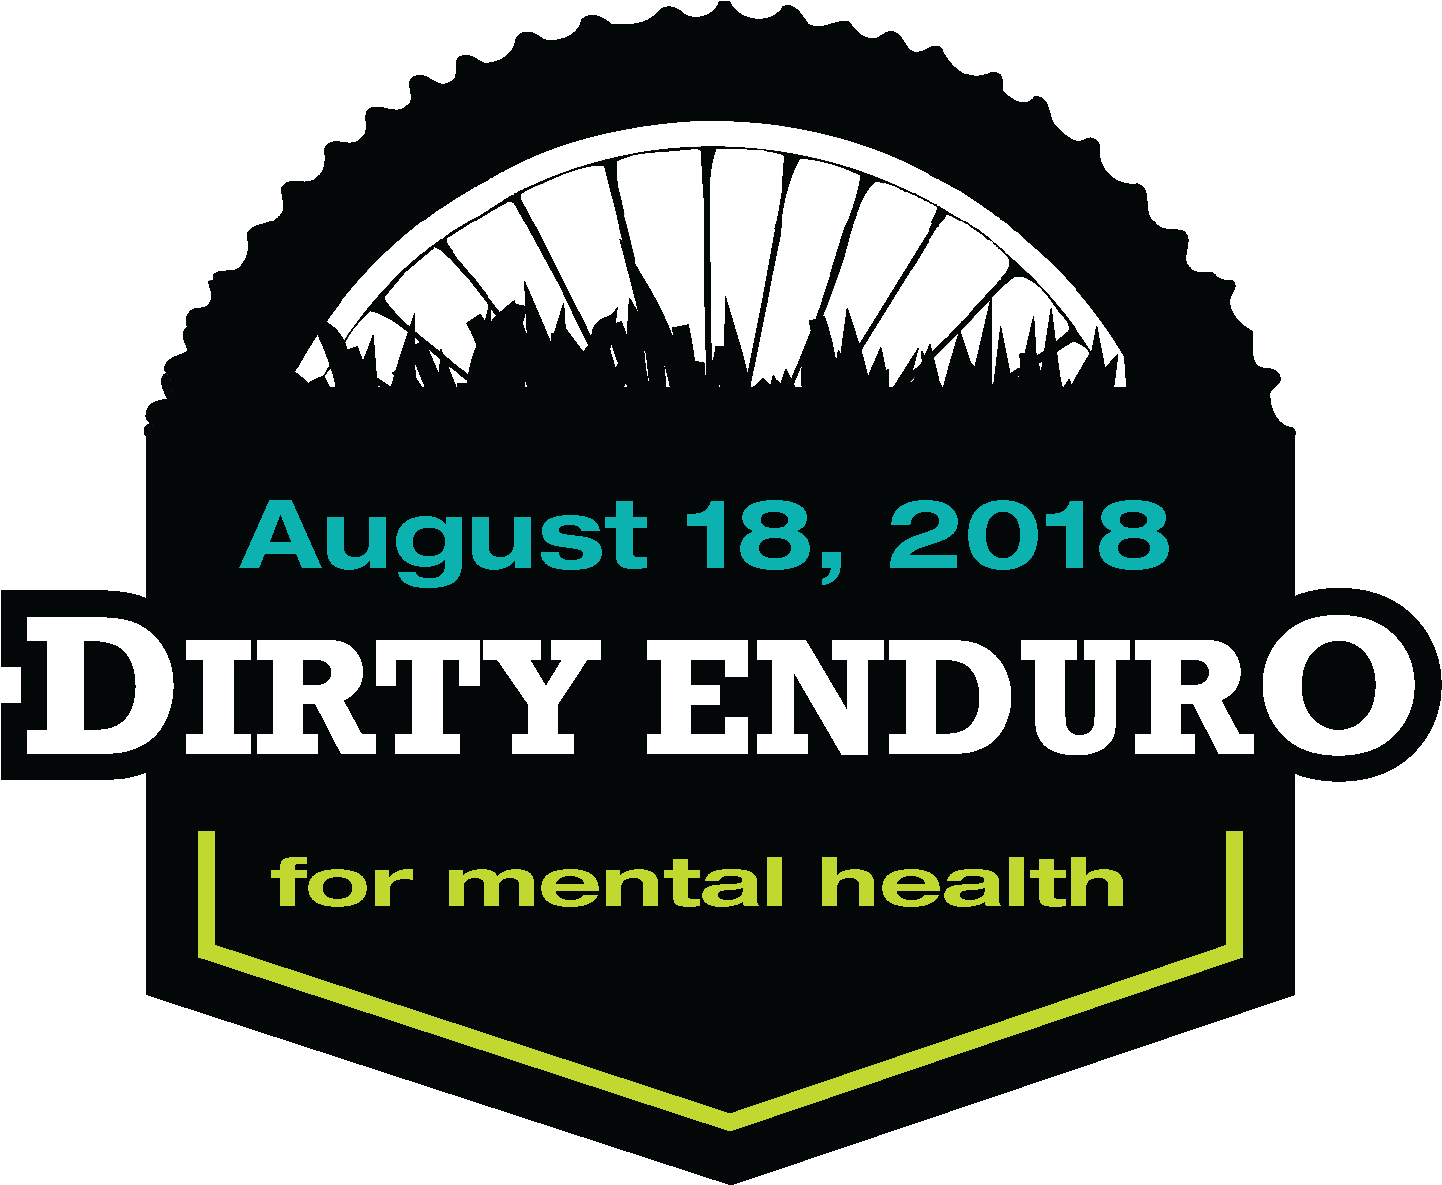 Dirty Enduro logo